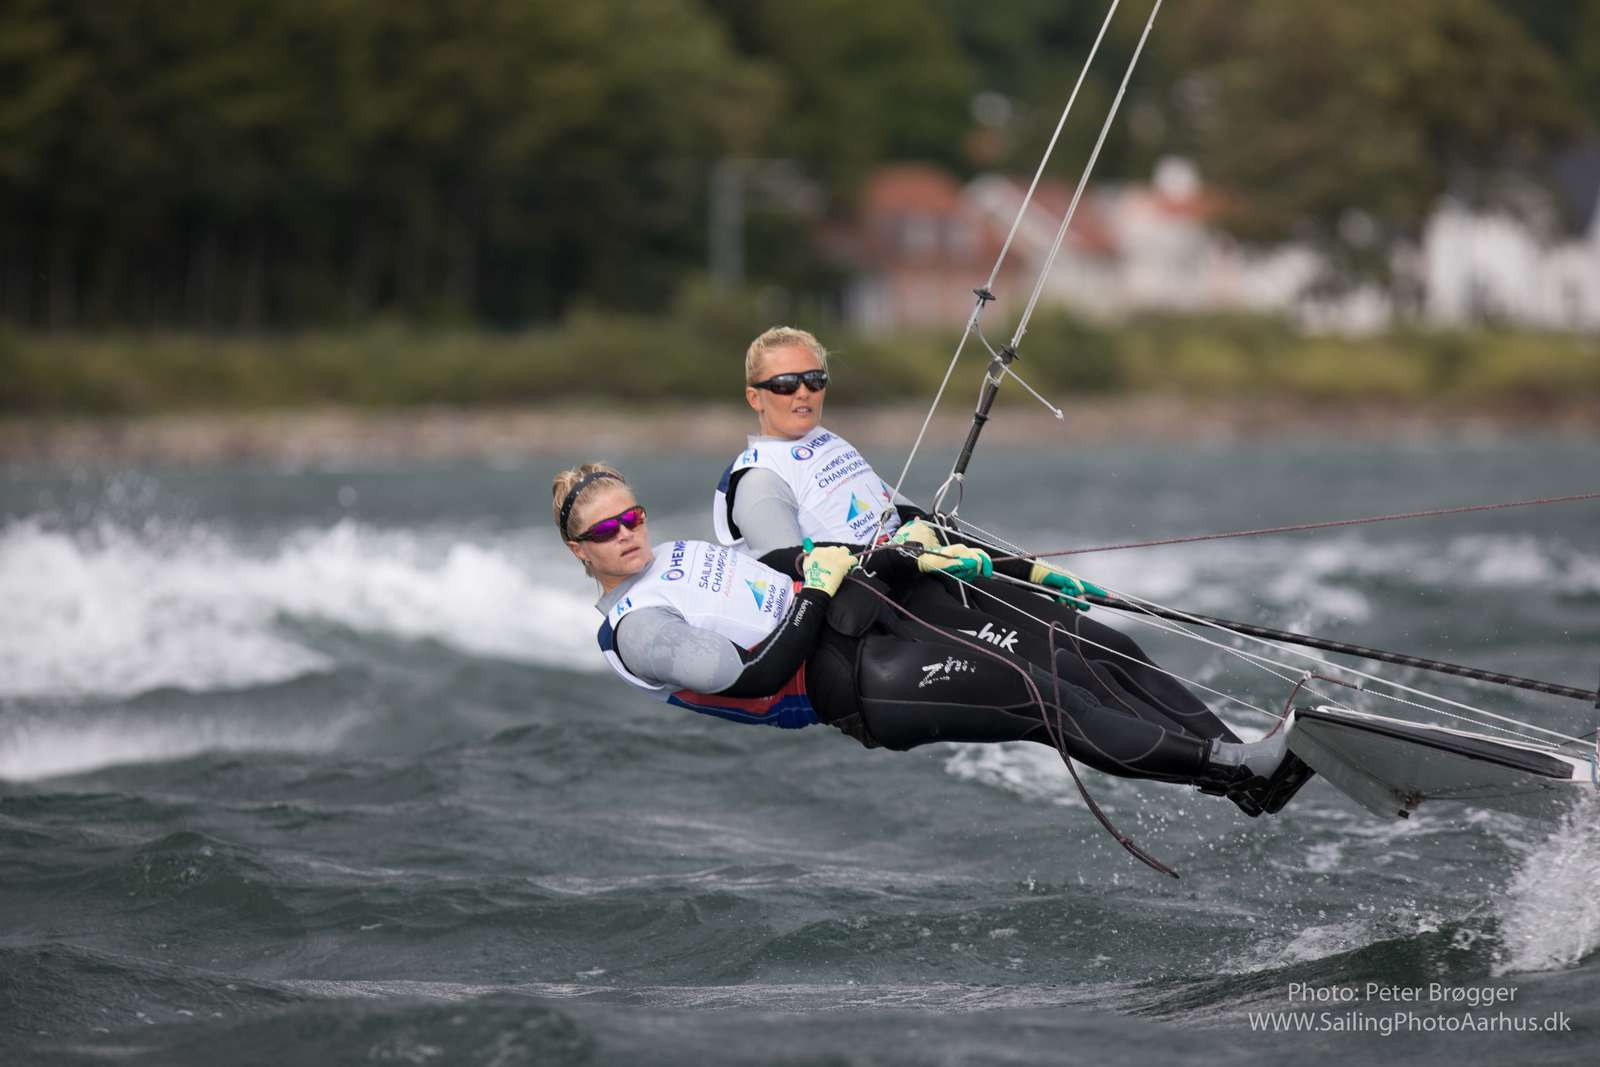 Sailing World Championships in Aarhus delivered significant local and global impact, study claims